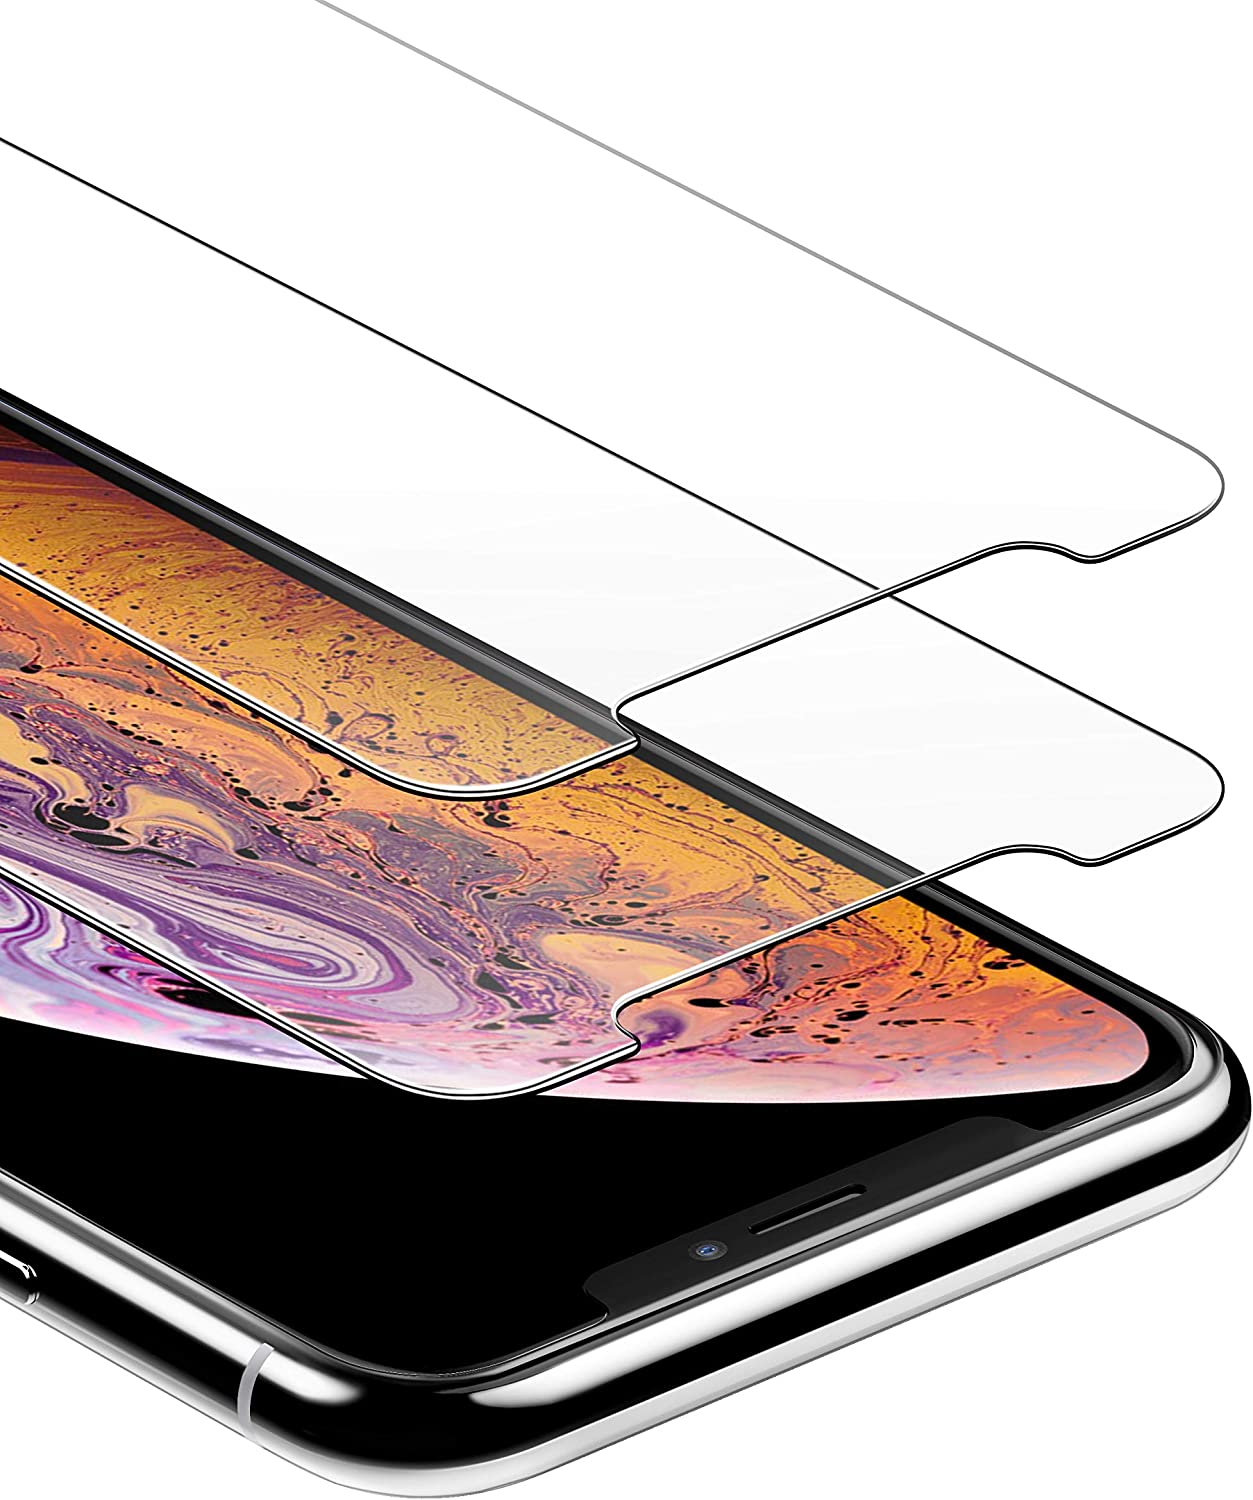 Anker GlassGuard Screen Protector for iPhone X/iPhone Xs/iPhone 5.8 Inch with Alignment Frame for Easy, Bubble-Free Installation and DoubleDefence Tempered Glass [Case Friendly] [2-Pack]